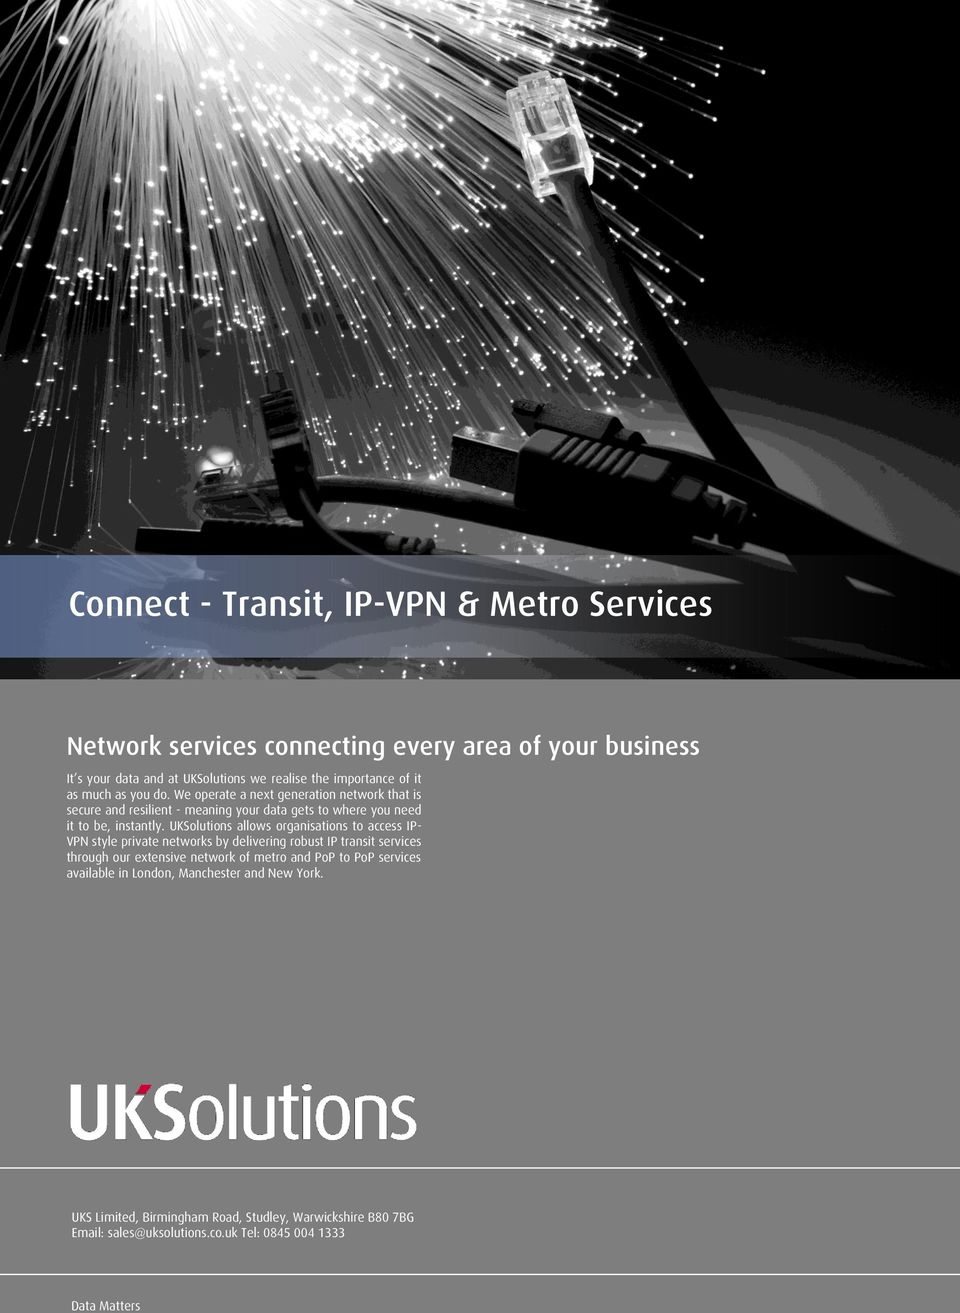 UKSolutions allows organisations to access IP- VPN style private networks by delivering robust IP transit services through our extensive network of metro and PoP to